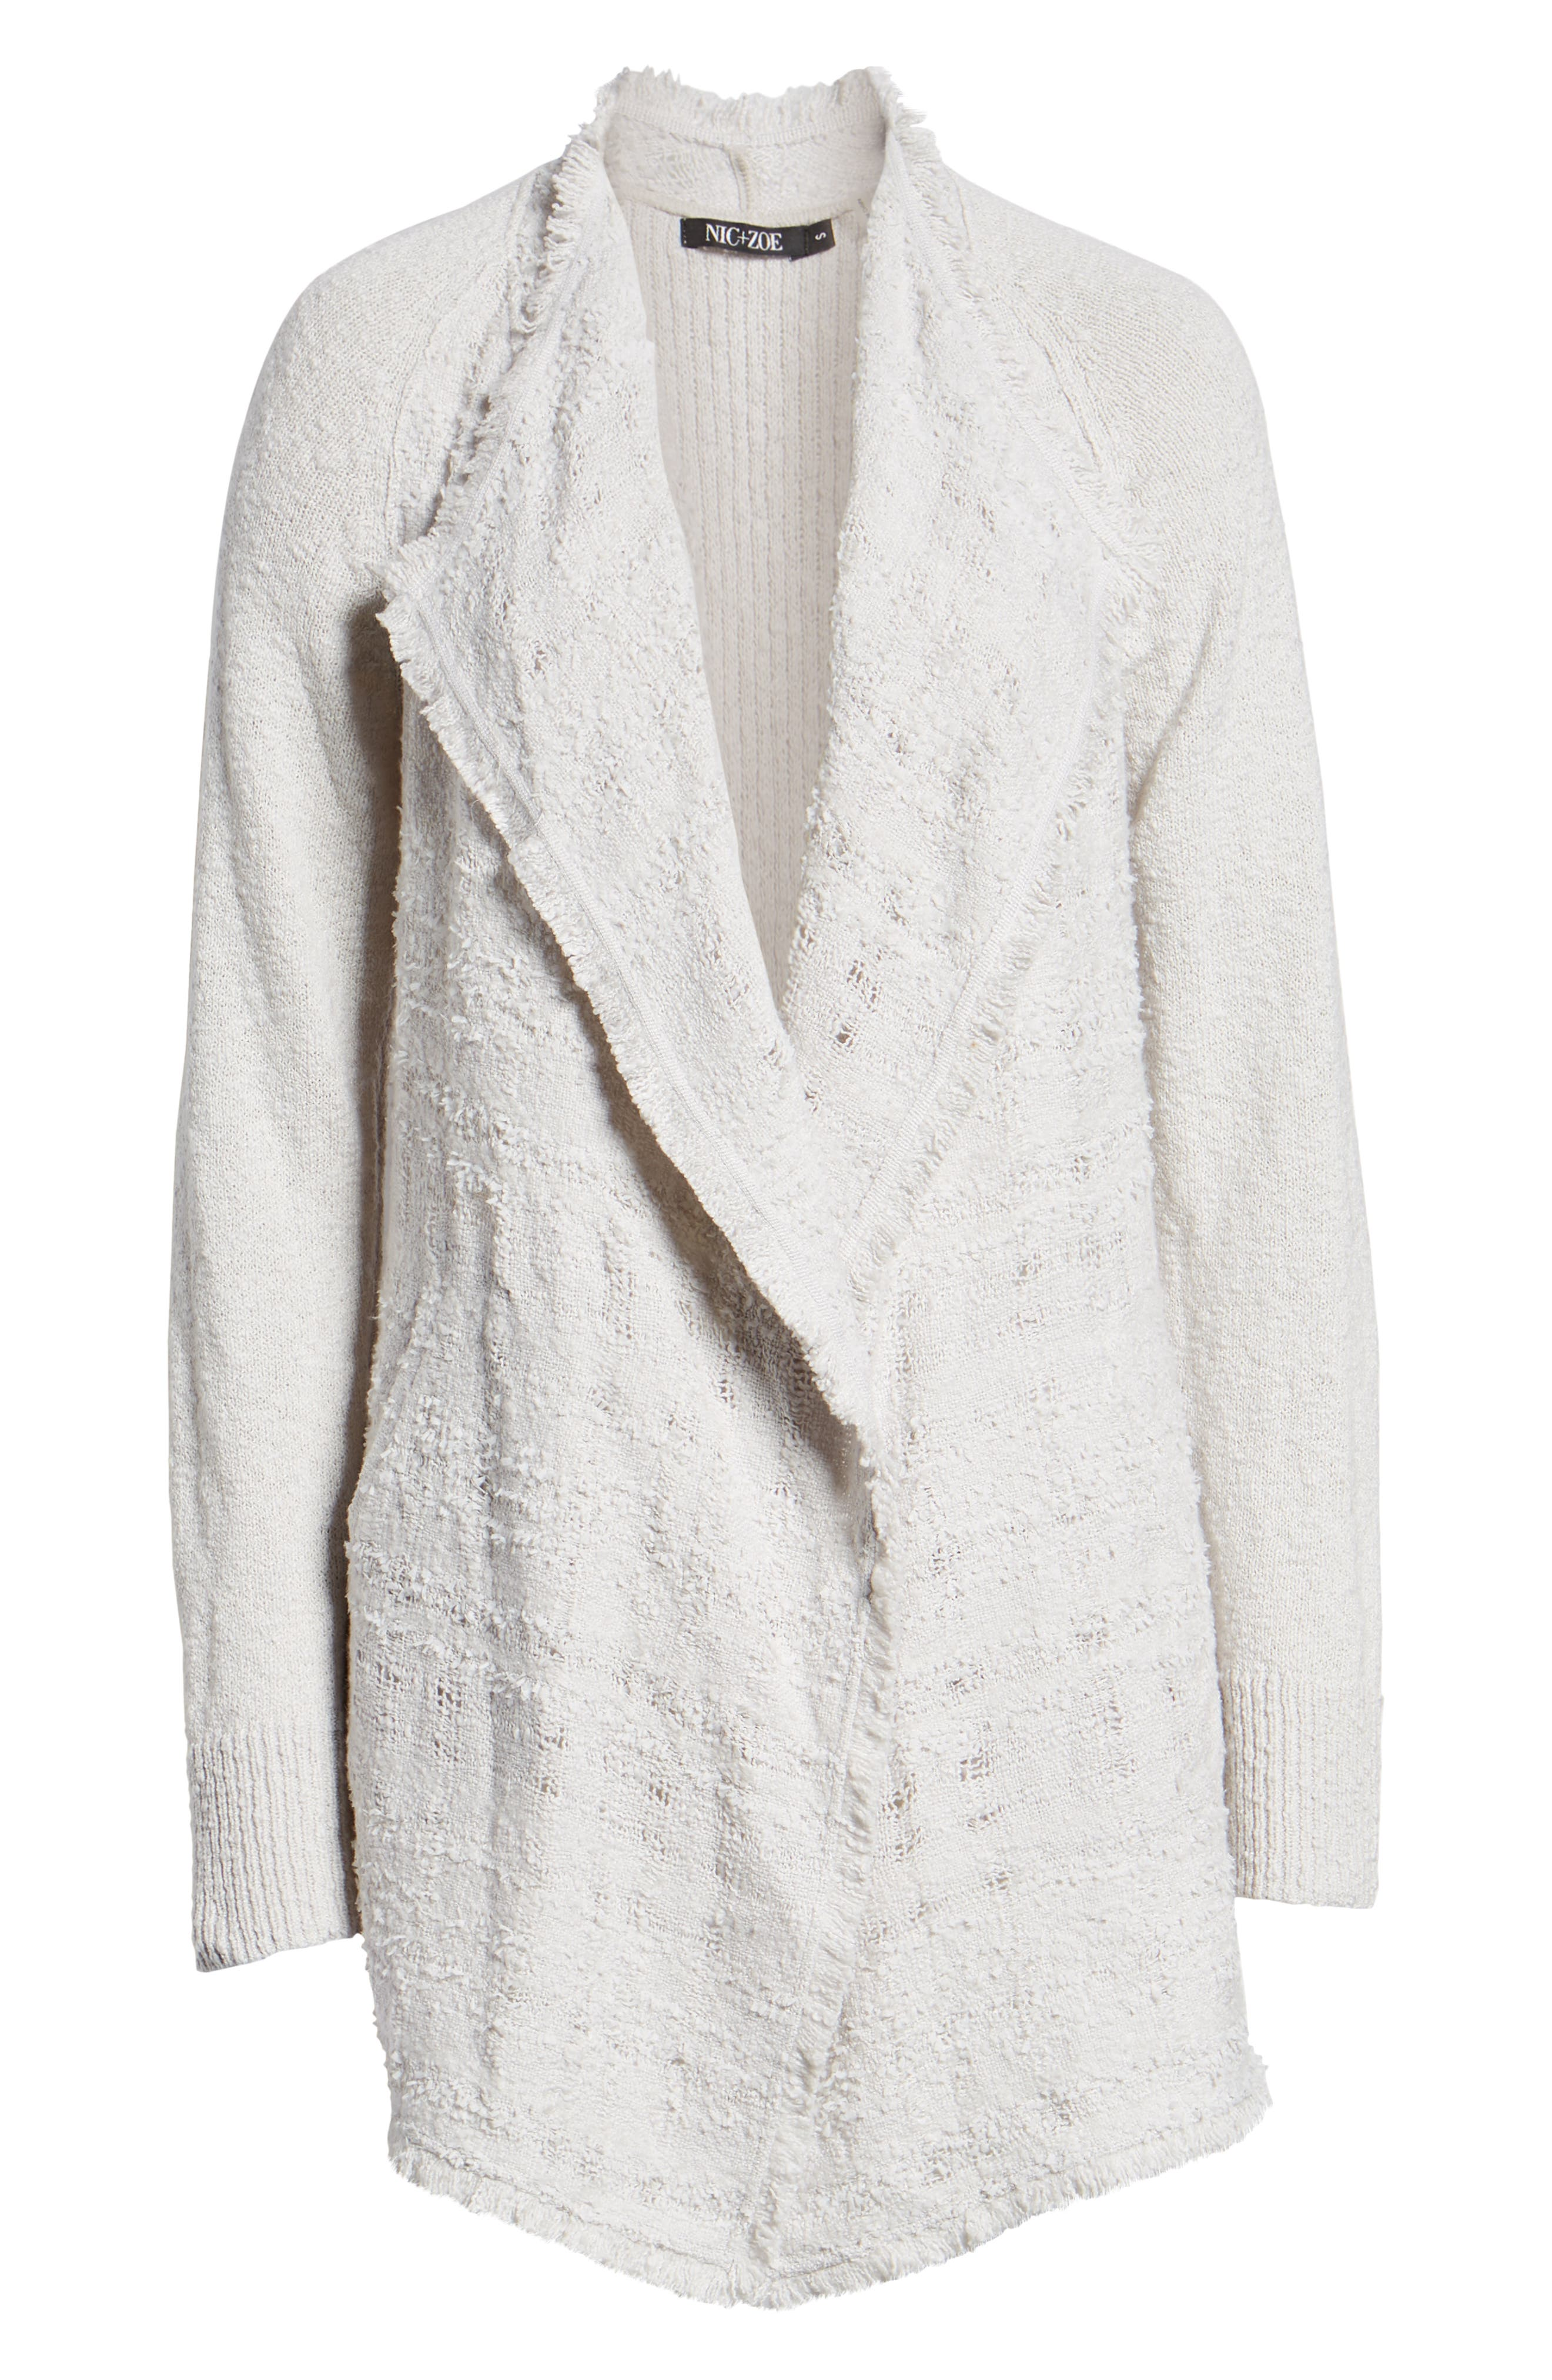 Carefree Cardigan,                             Alternate thumbnail 6, color,                             FROST